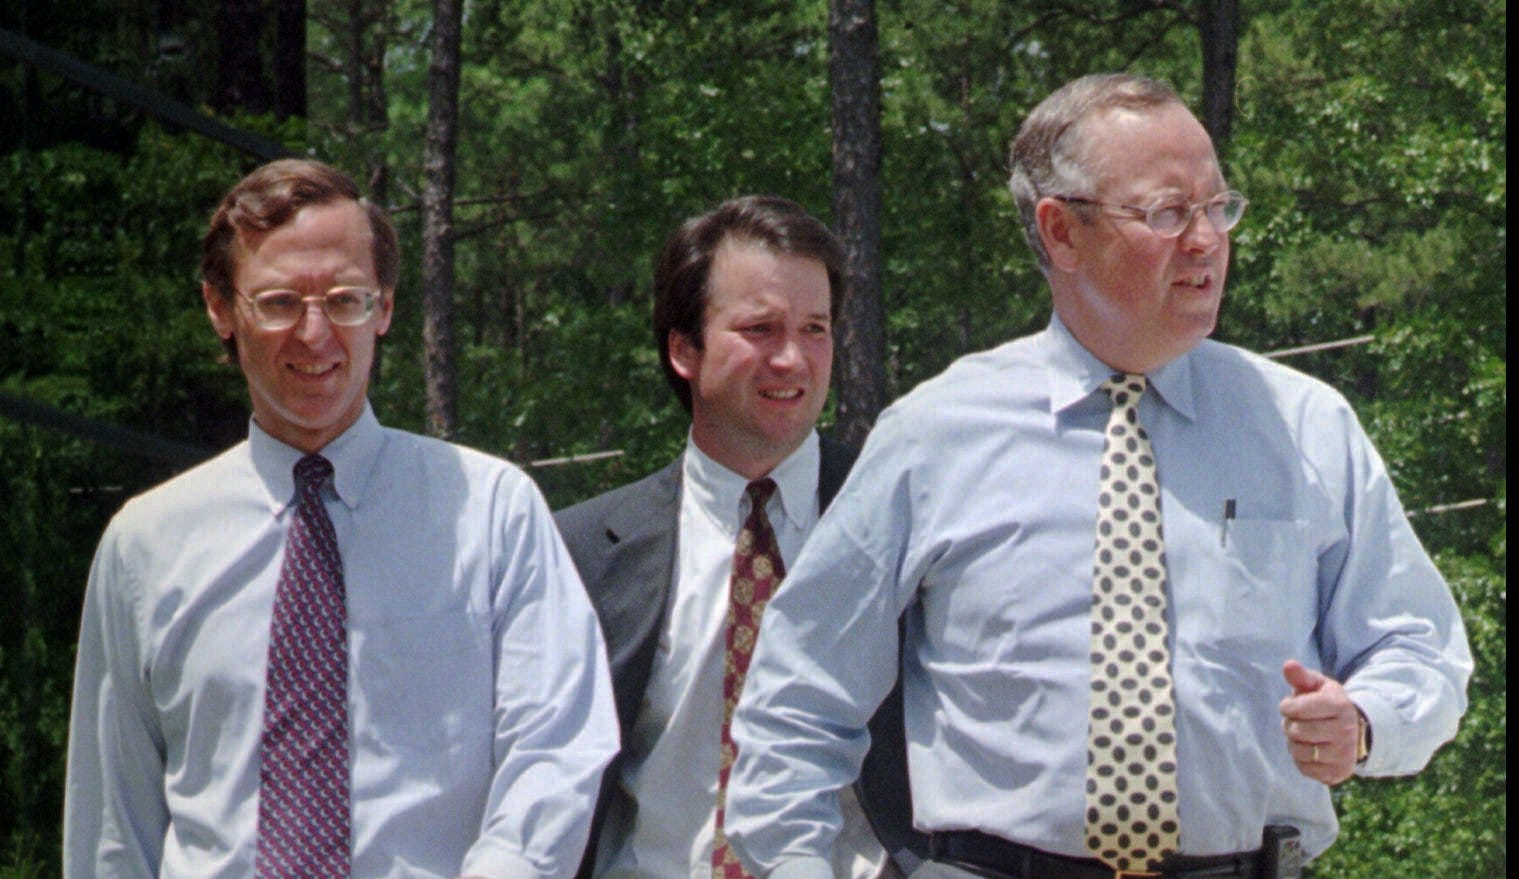 Current Supreme Court nominee Brett Kavanaugh, center, walks alongside independent counsel Ken Starr in 1997 during their investigation of President Bill Clinton.